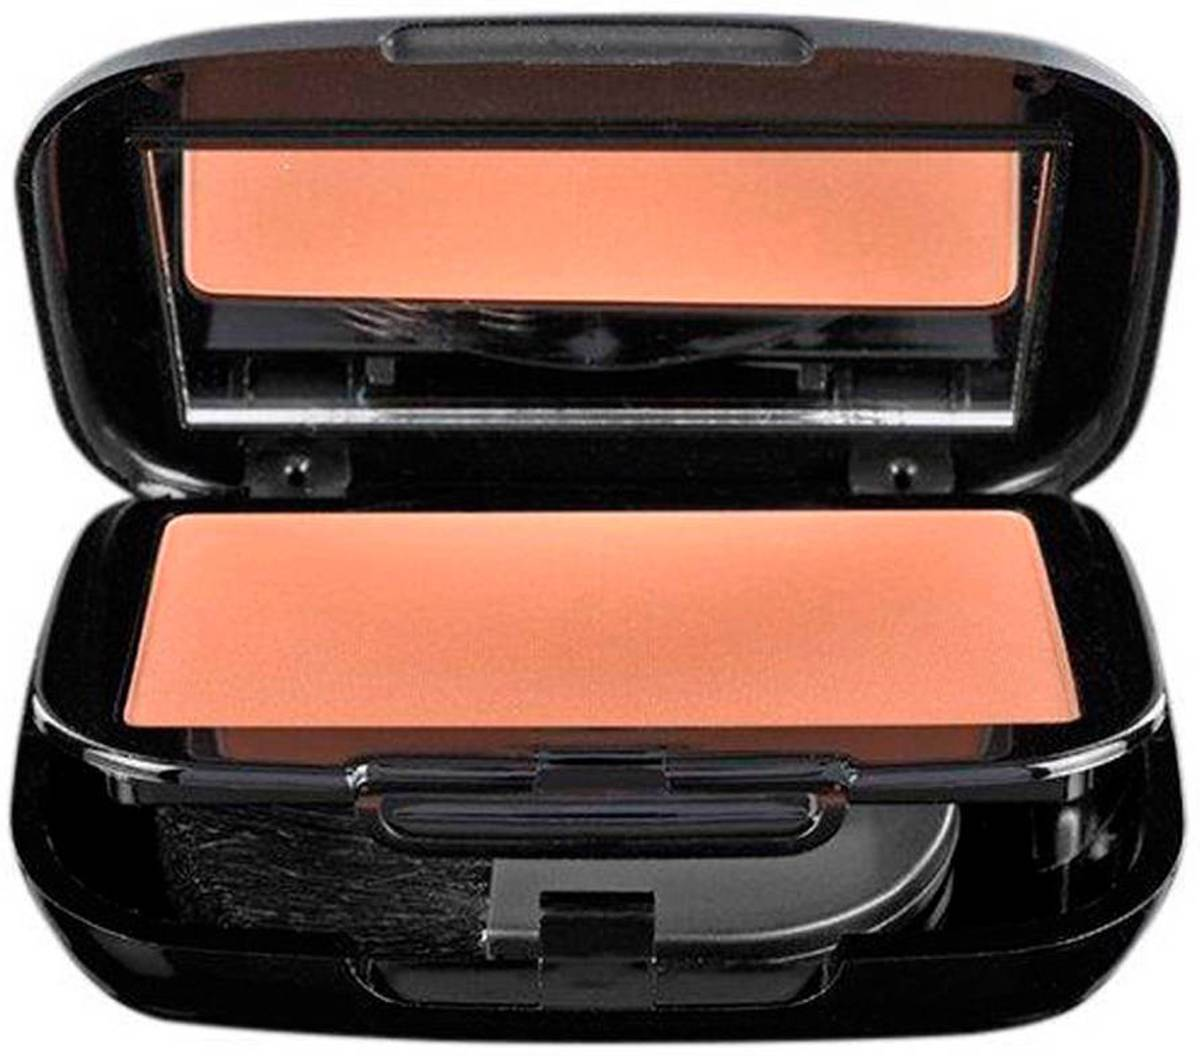 Make-up Studio Compact Earth Powder Bronzer 17 gr